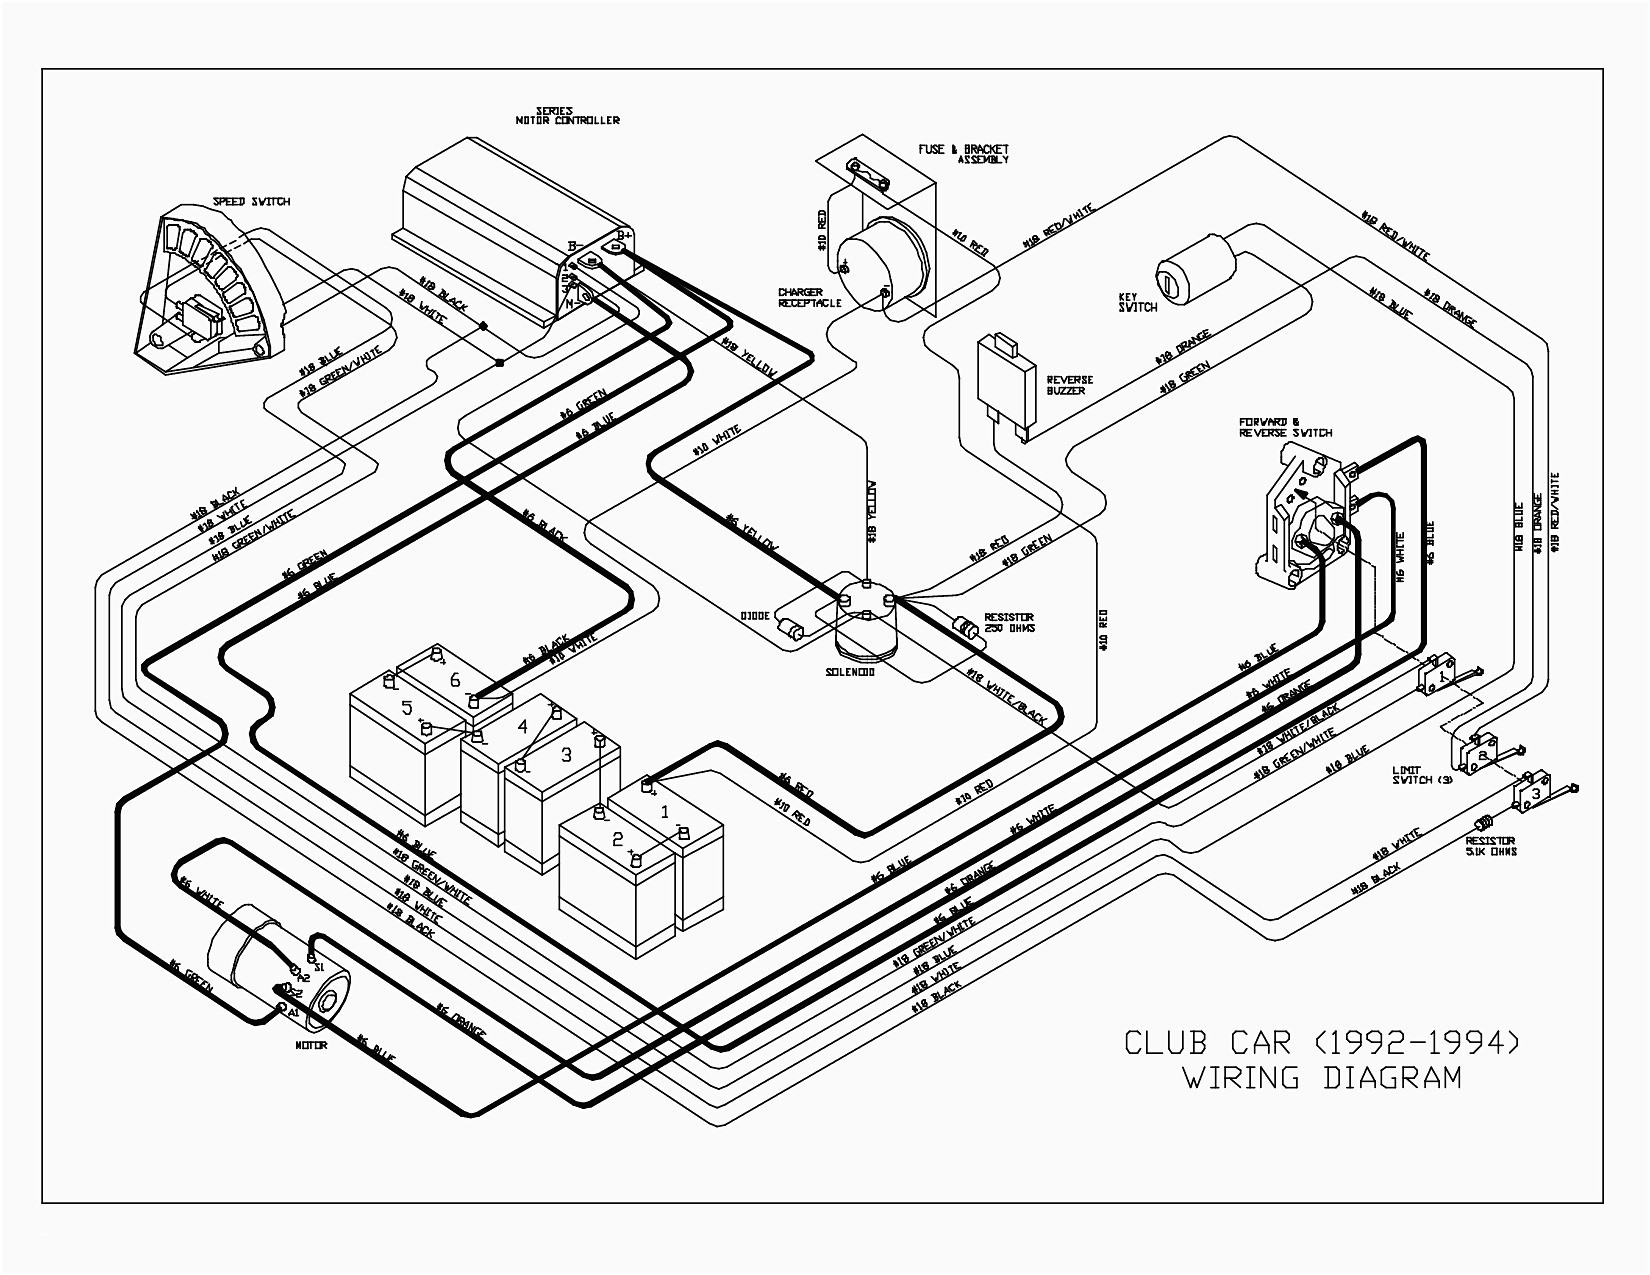 1982 Club Car Golf Cart Battery Wiring Diagram - Wiring Diagram Club Car Precedent V Battery Wiring Diagram on club car light wiring diagram, 2007 club car precedent wiring diagram, club car precedent parts diagram, club car electrical diagram,